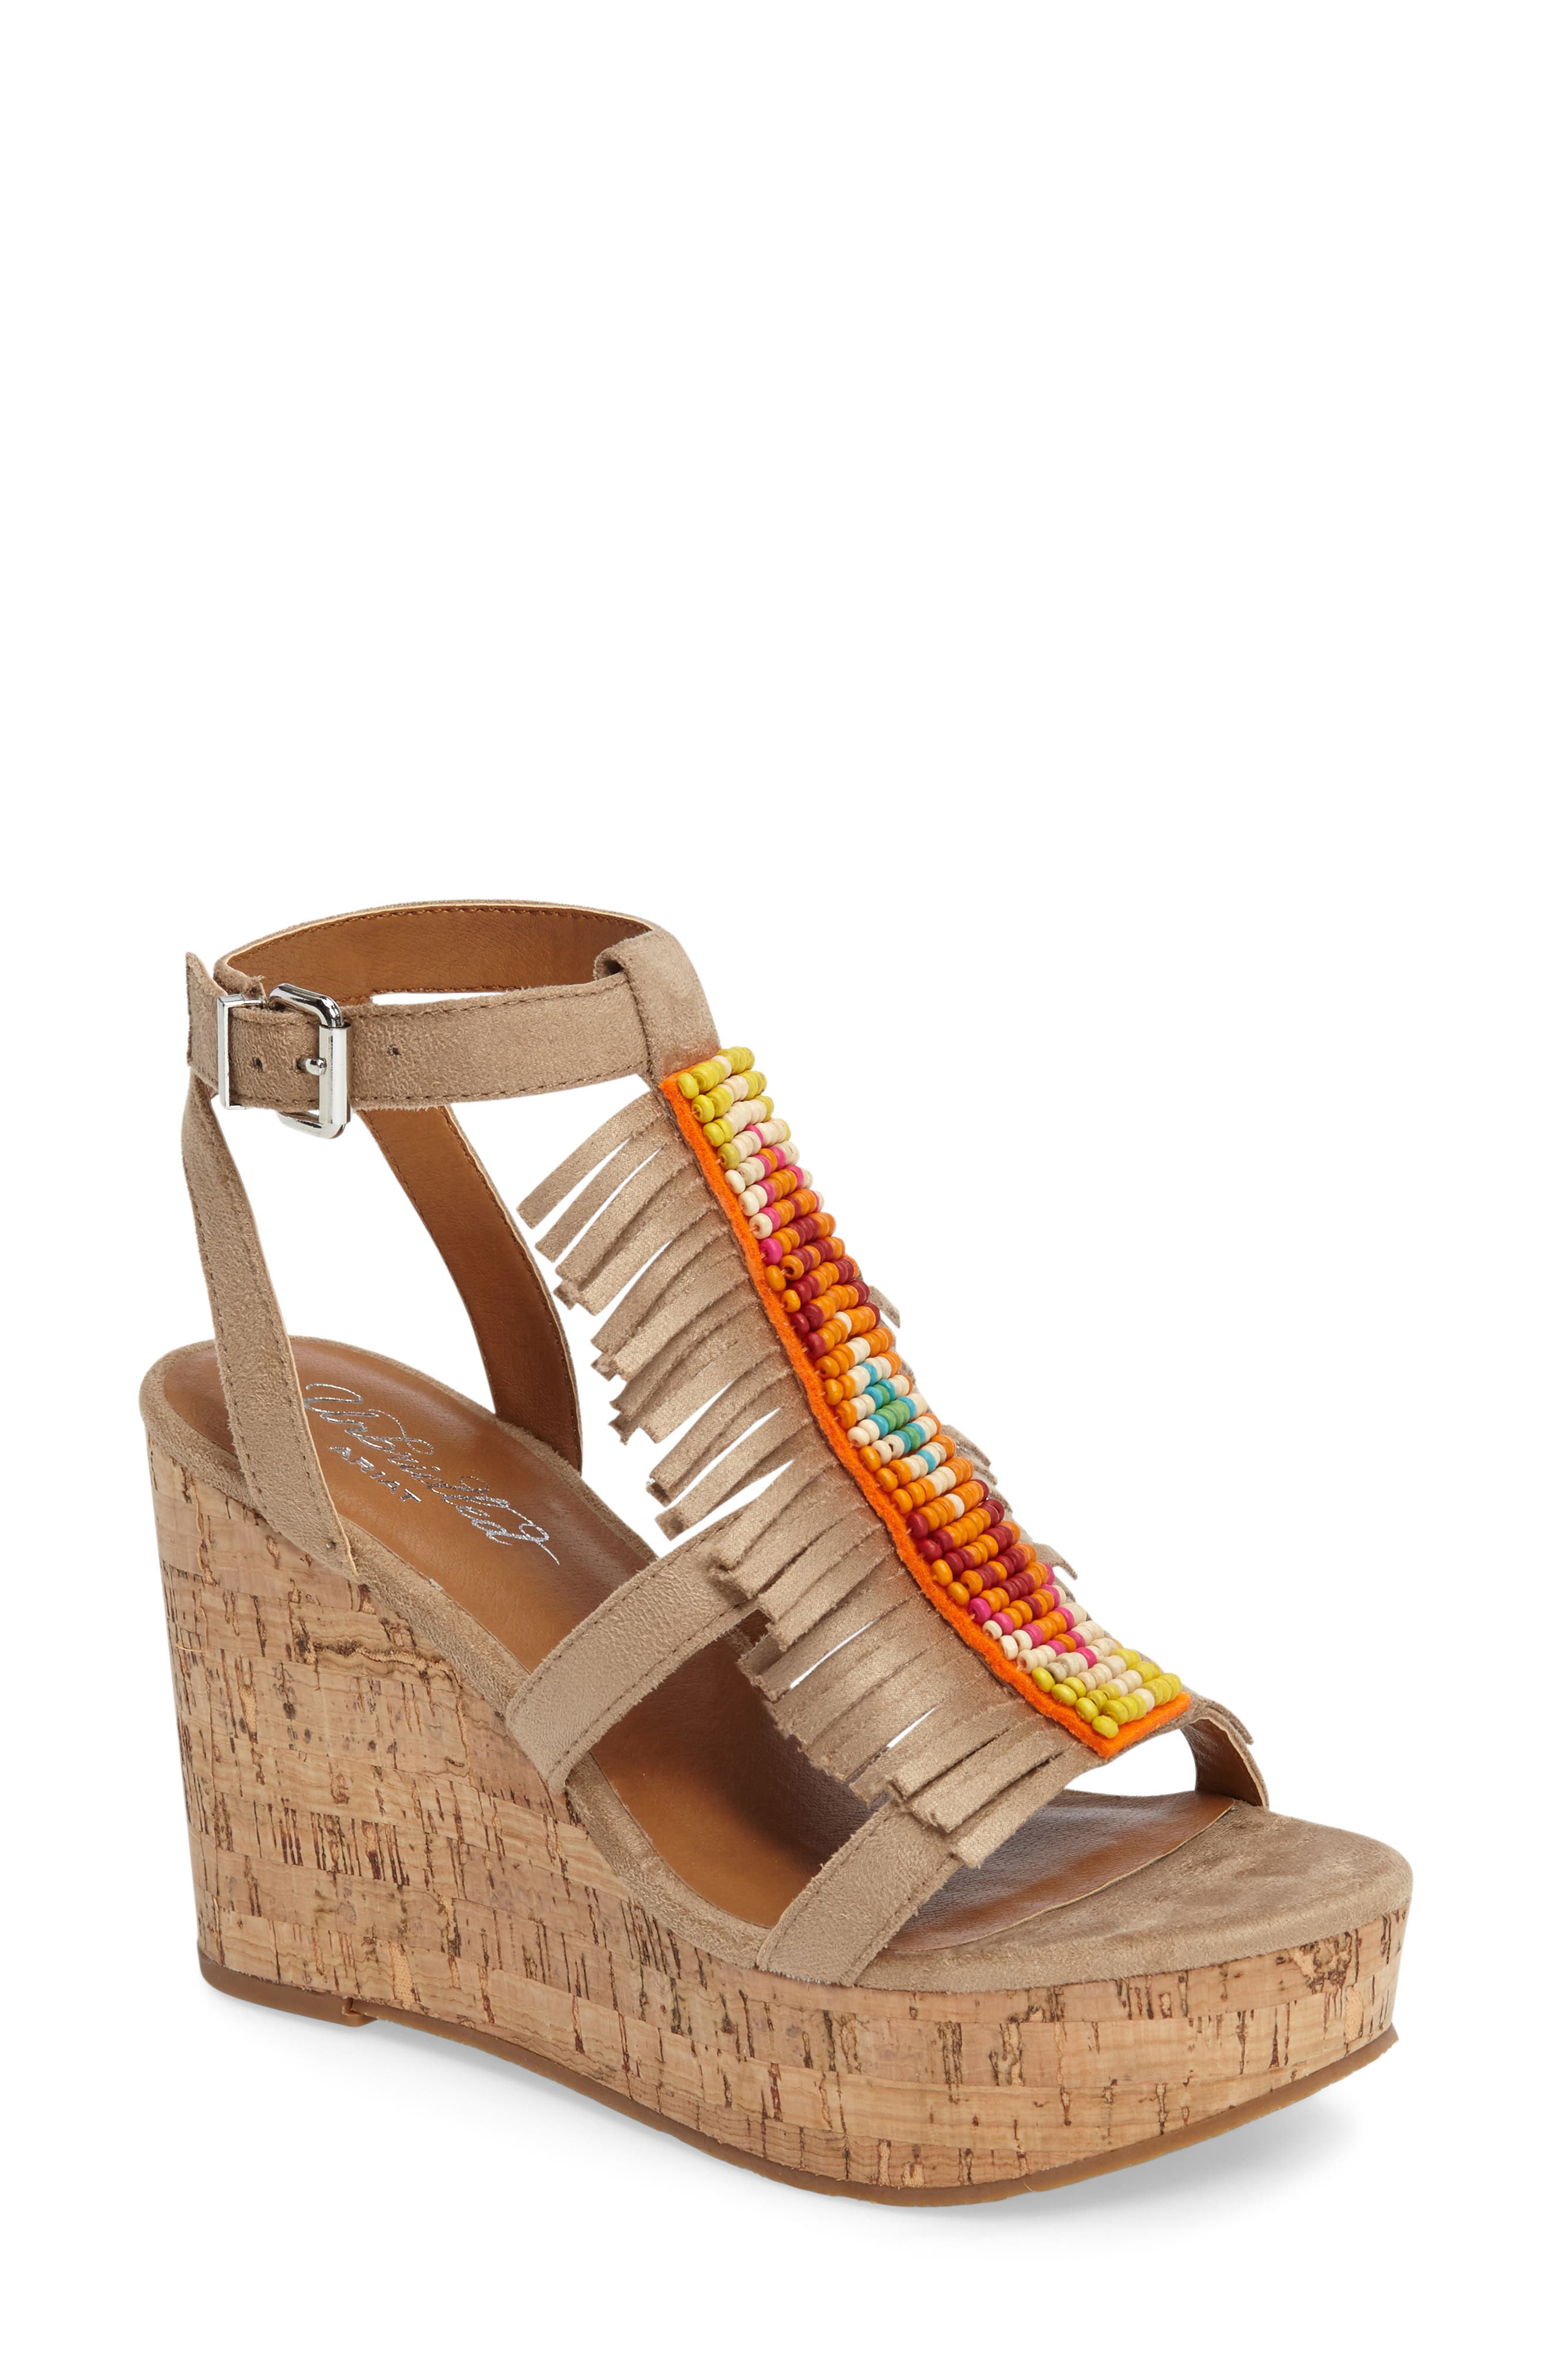 Unbridled Lolita Wedge Sandal,                         Main,                         color,